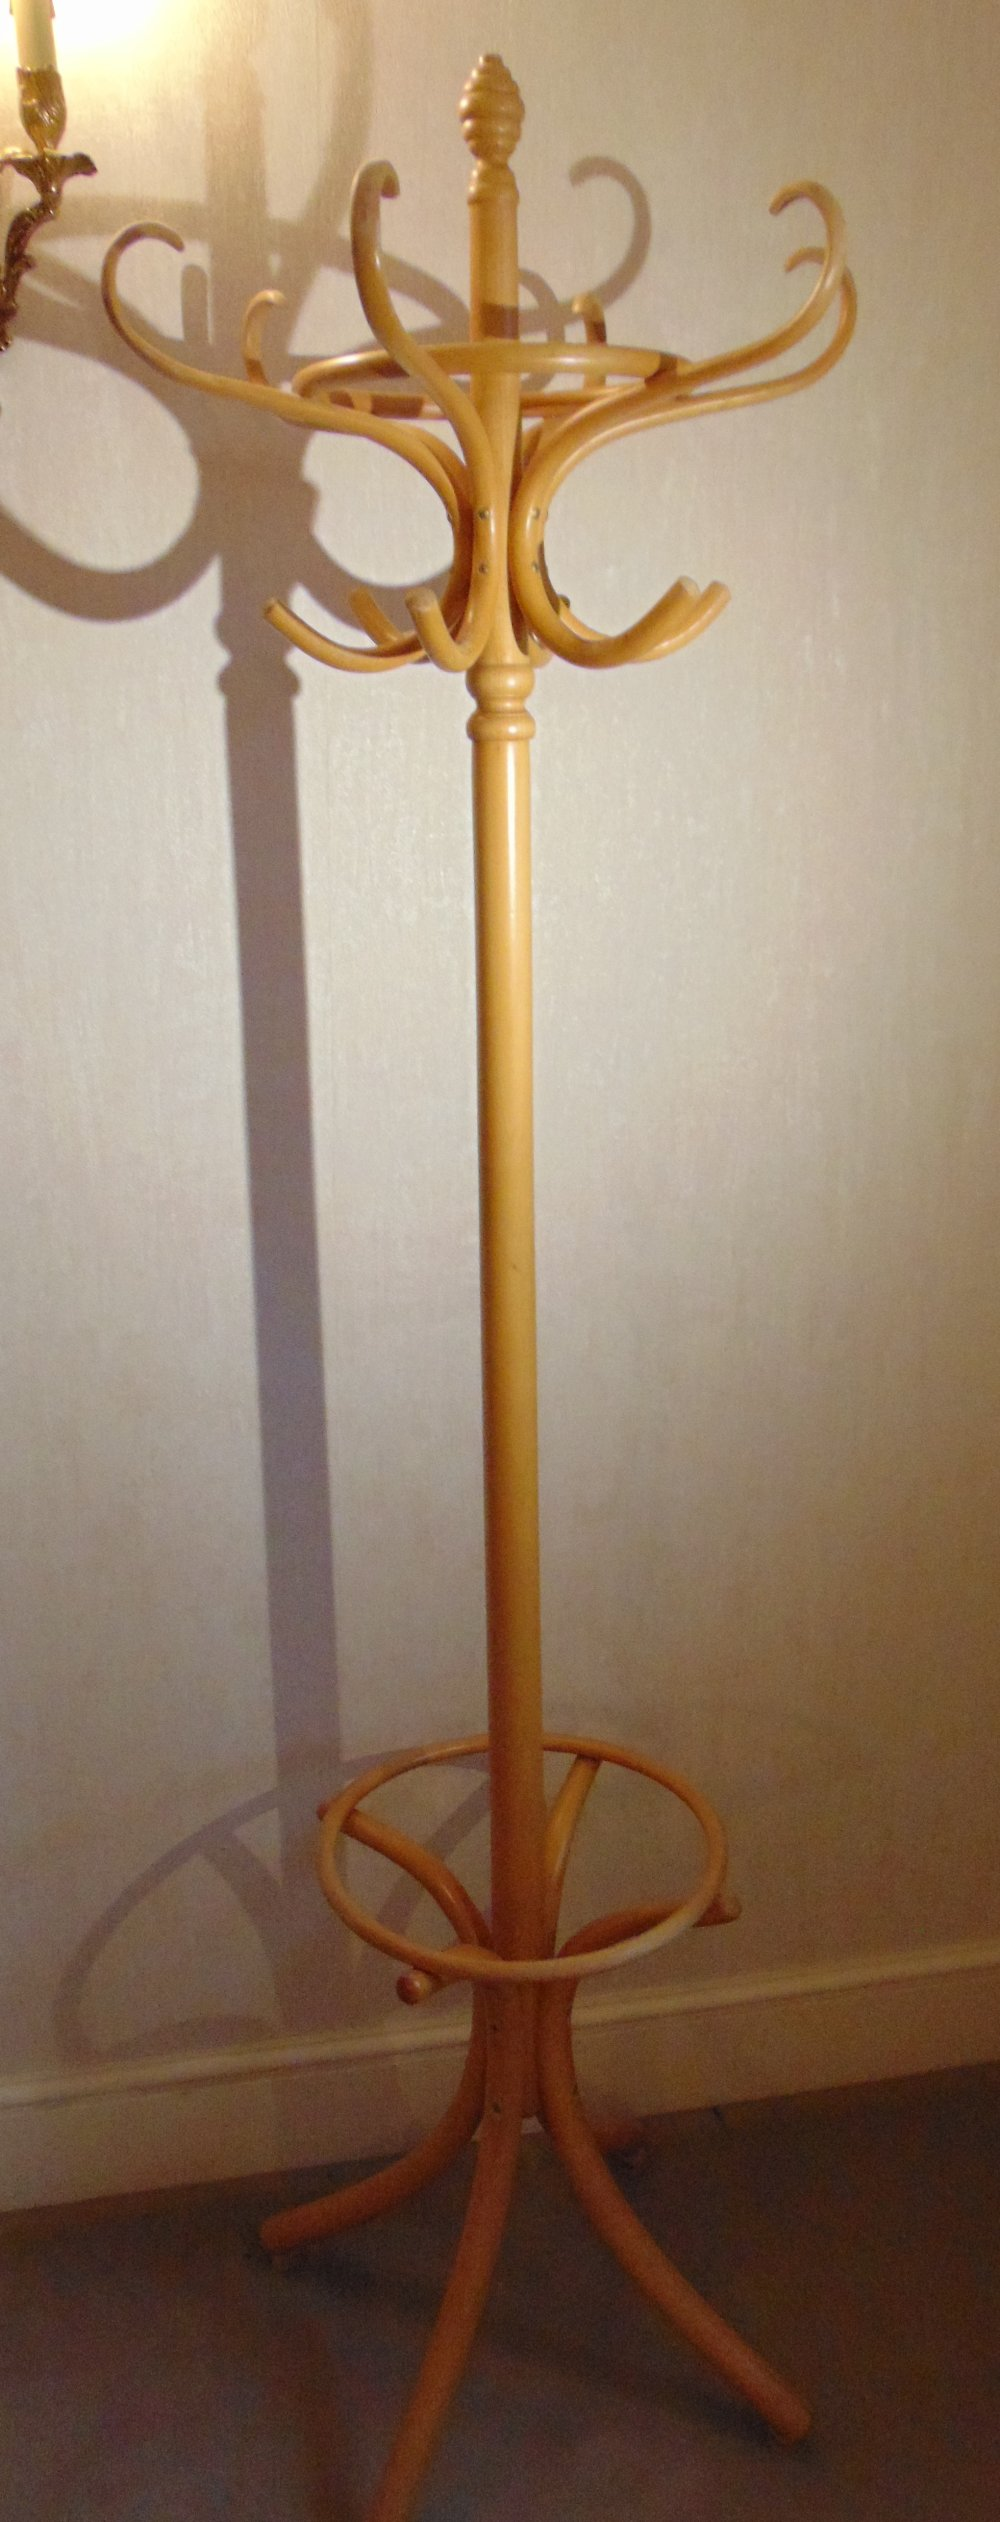 Lot 23 - A Bentwood hat and coat stand of customary form